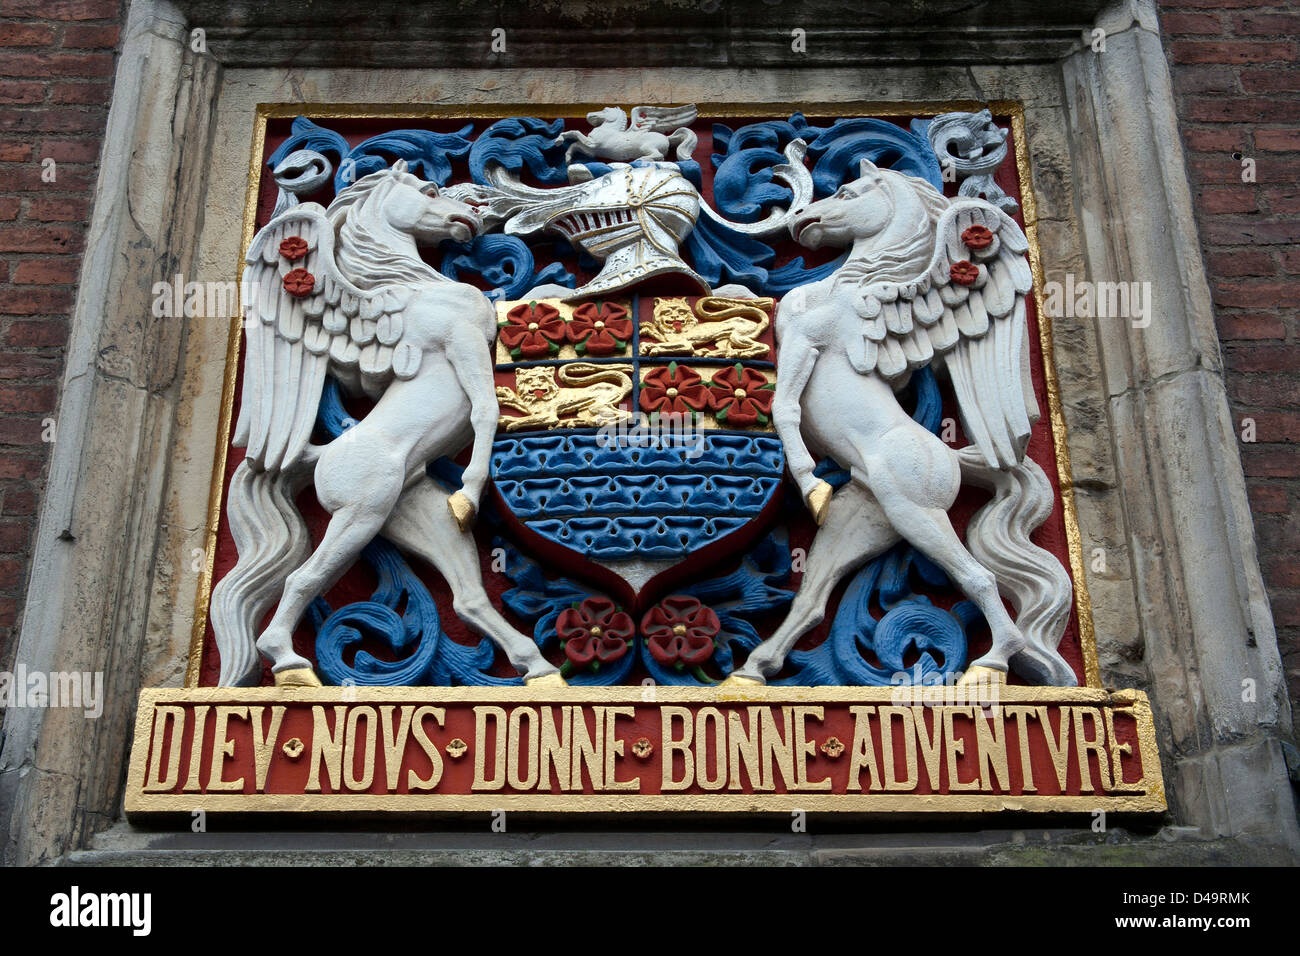 The coat of arms above the entrance to the Merchant Adventurers' Hall - a medieval guildhall - in the city of - Stock Image